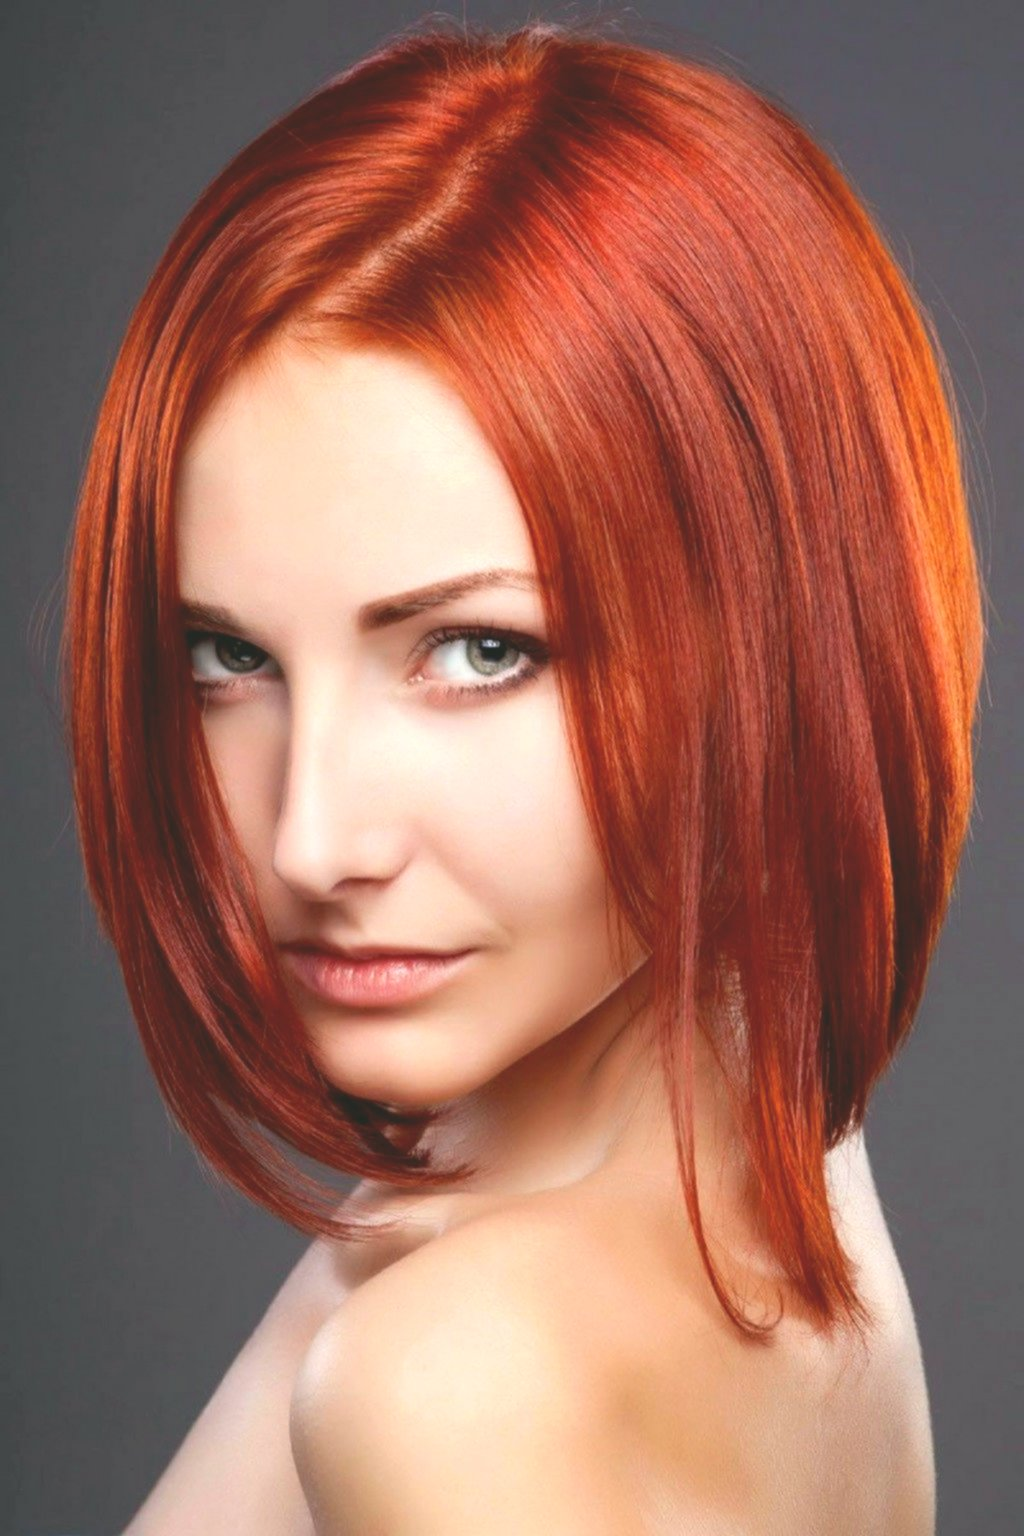 top bubikopf hairstyle gallery-Finest Bubikopf hairstyle pattern